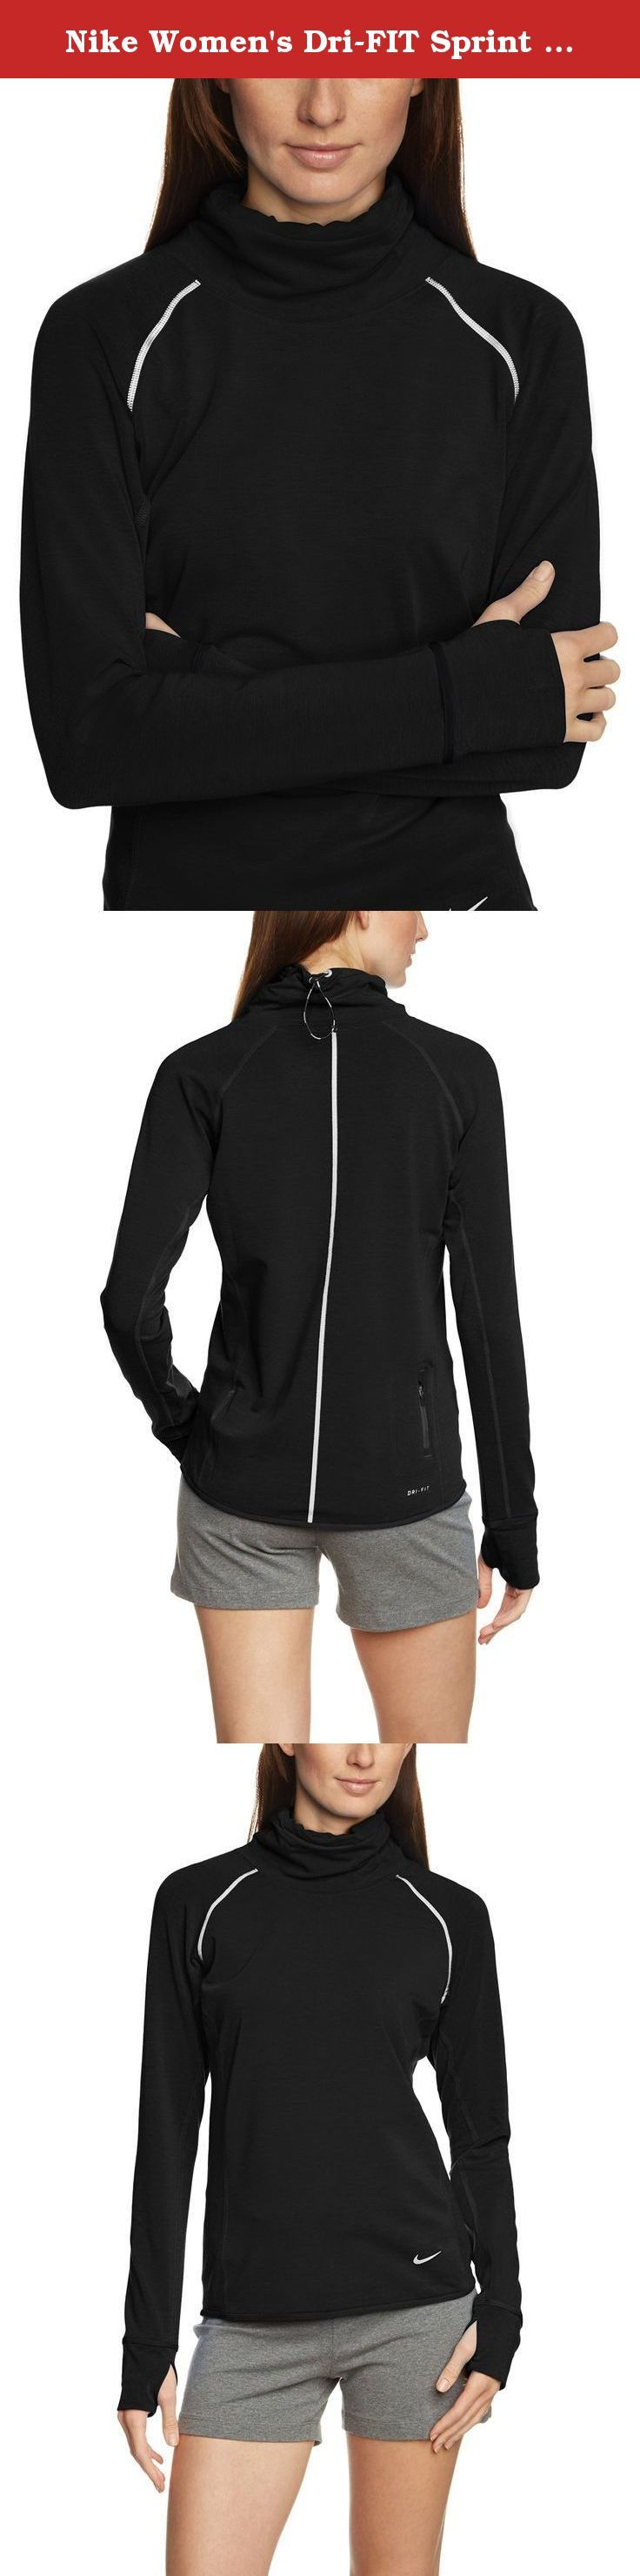 Nike Women's Dri-FIT Sprint Fleece Pullover Running Top, Black, Large. The Nike Dri-FIT Sprint Fleece Pullover Women's Running Top features an adjustable cowl neck and soft sweatwicking fabric for lightweight comfort on coolweather runs.